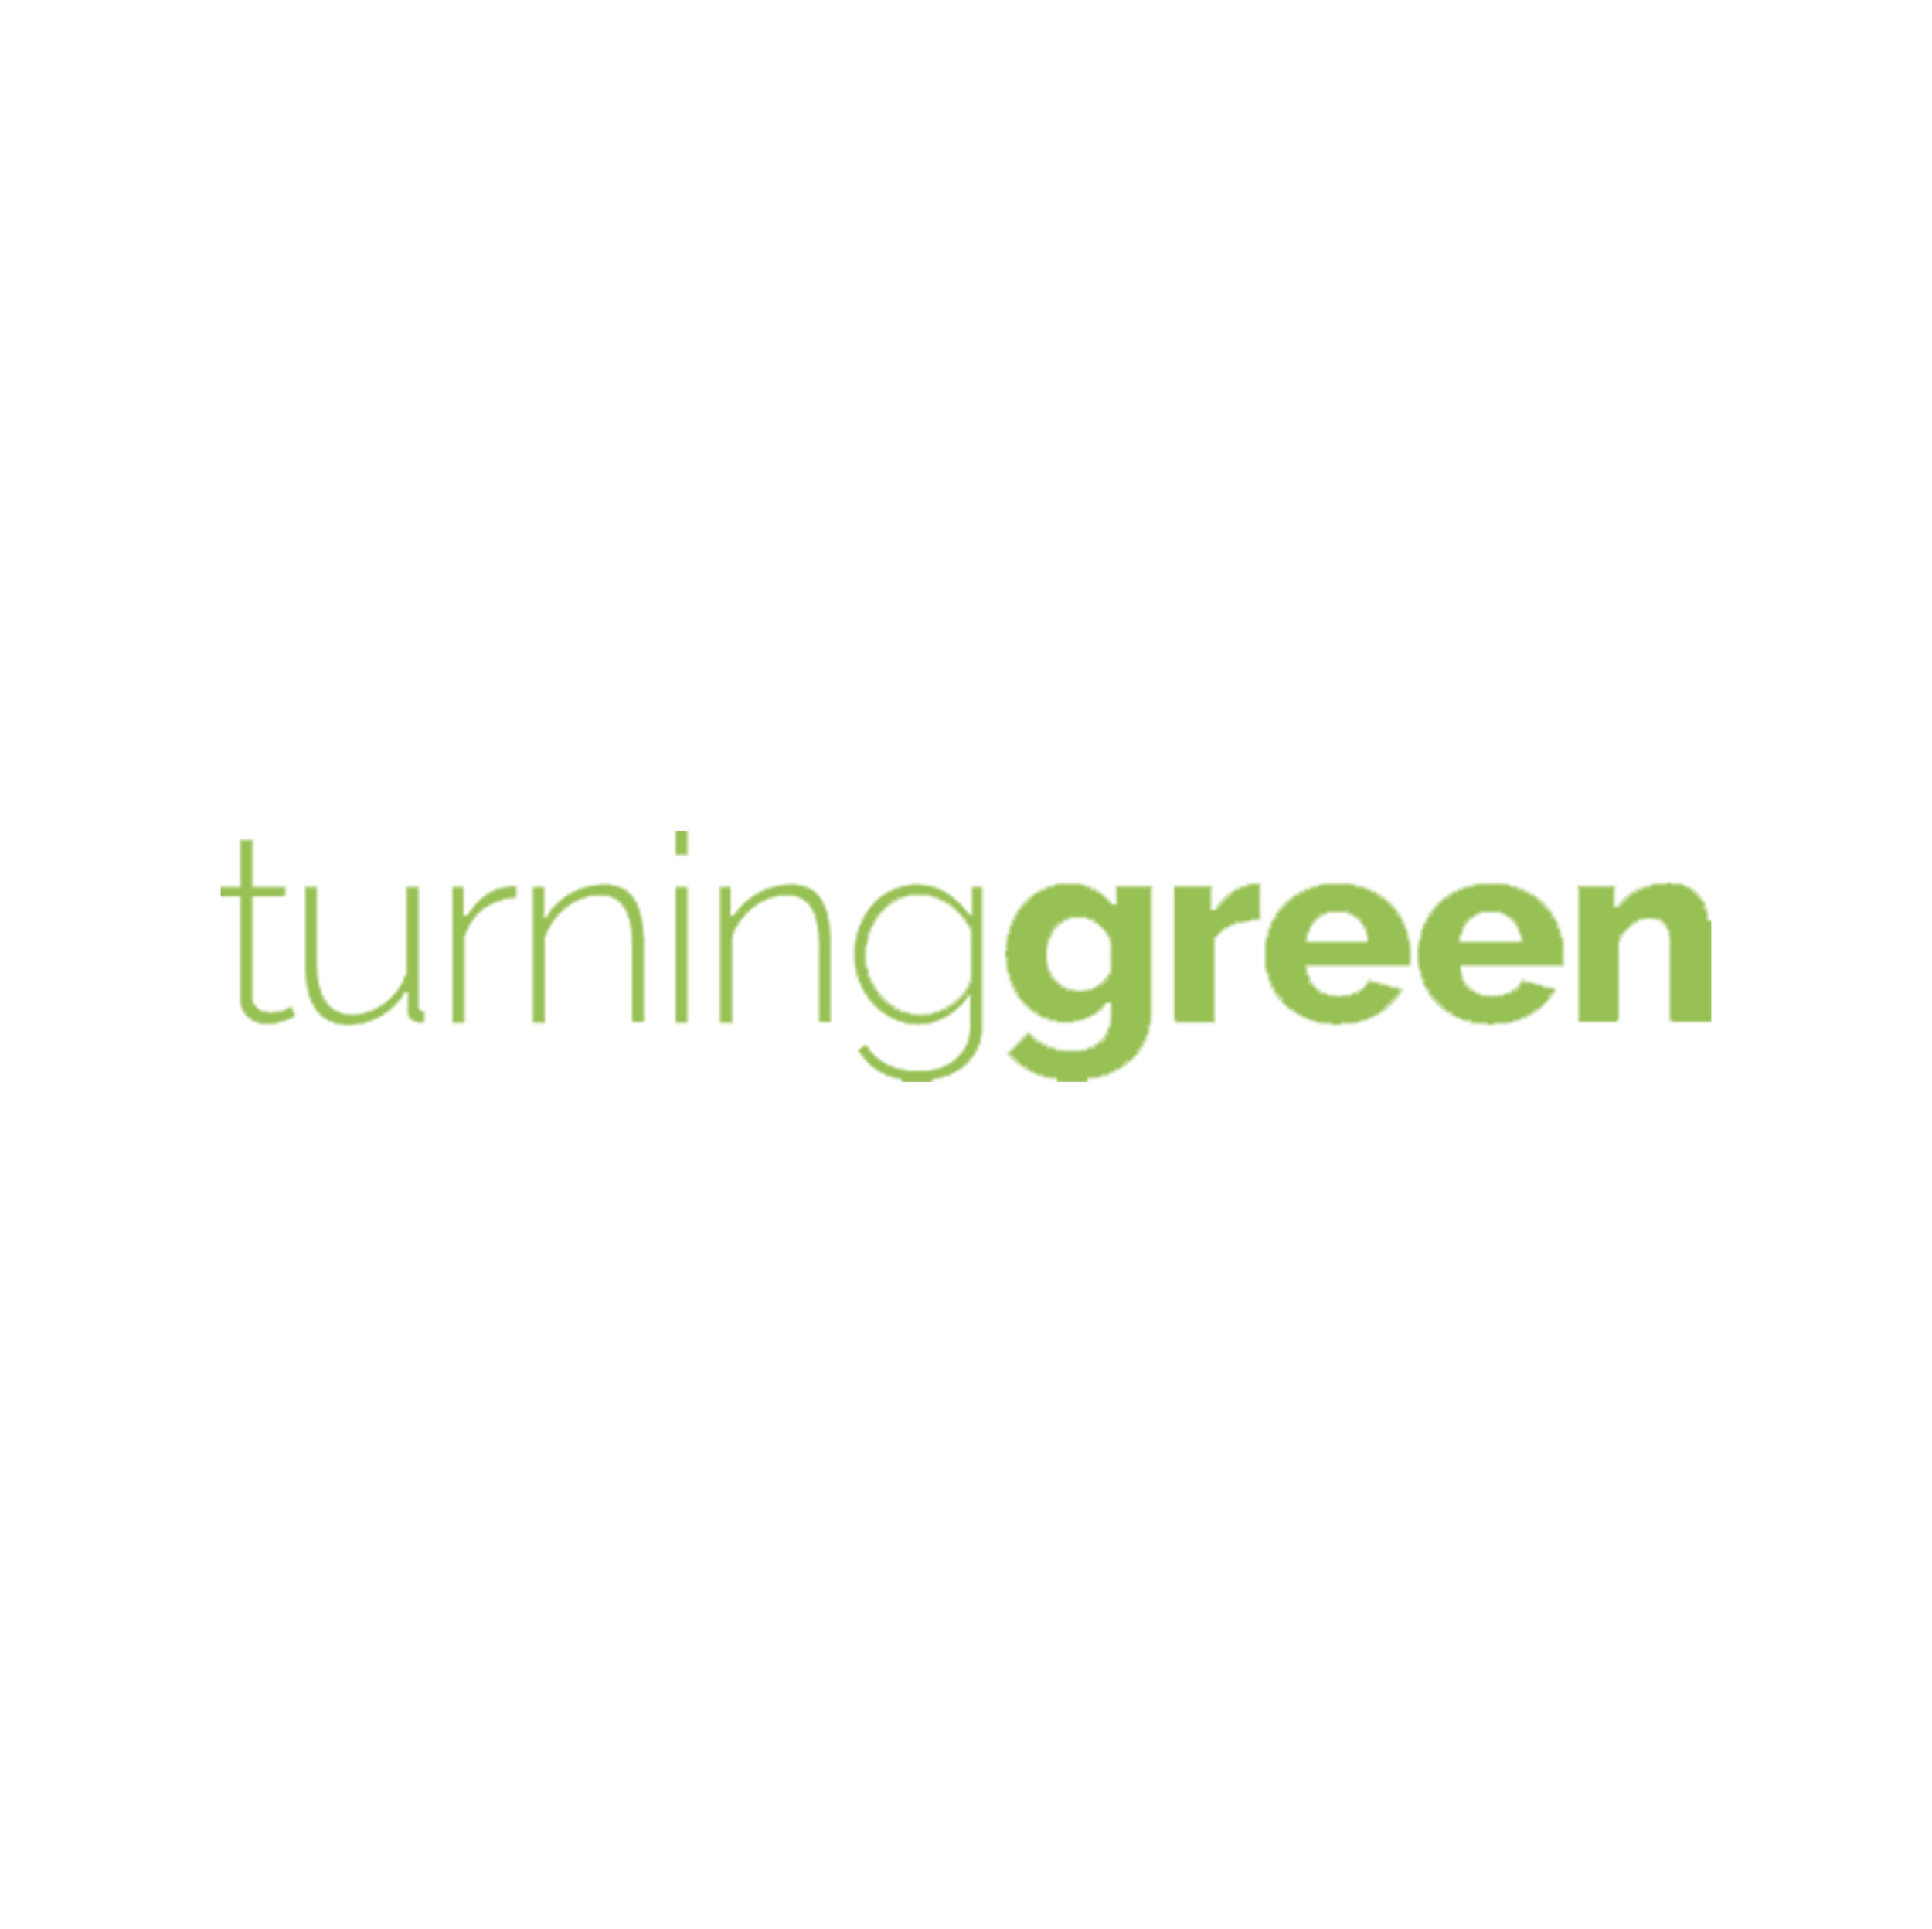 turninggreen-logo.png